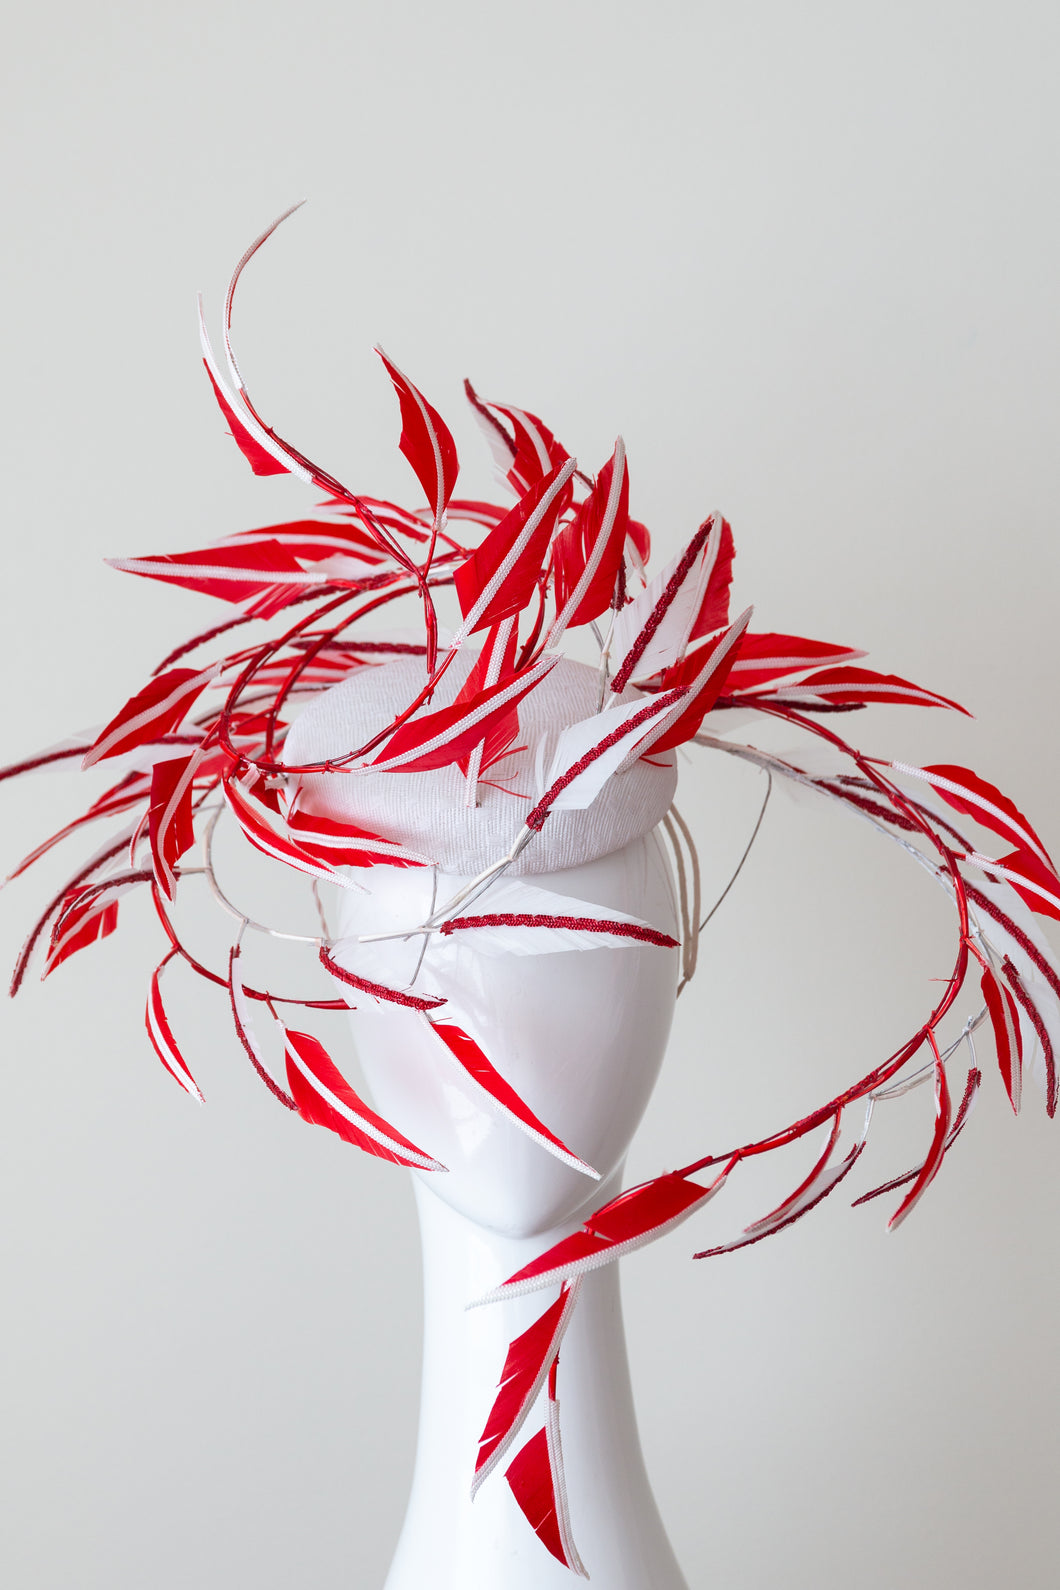 ELECTUS  HAT-Red and White feather sculptured hat